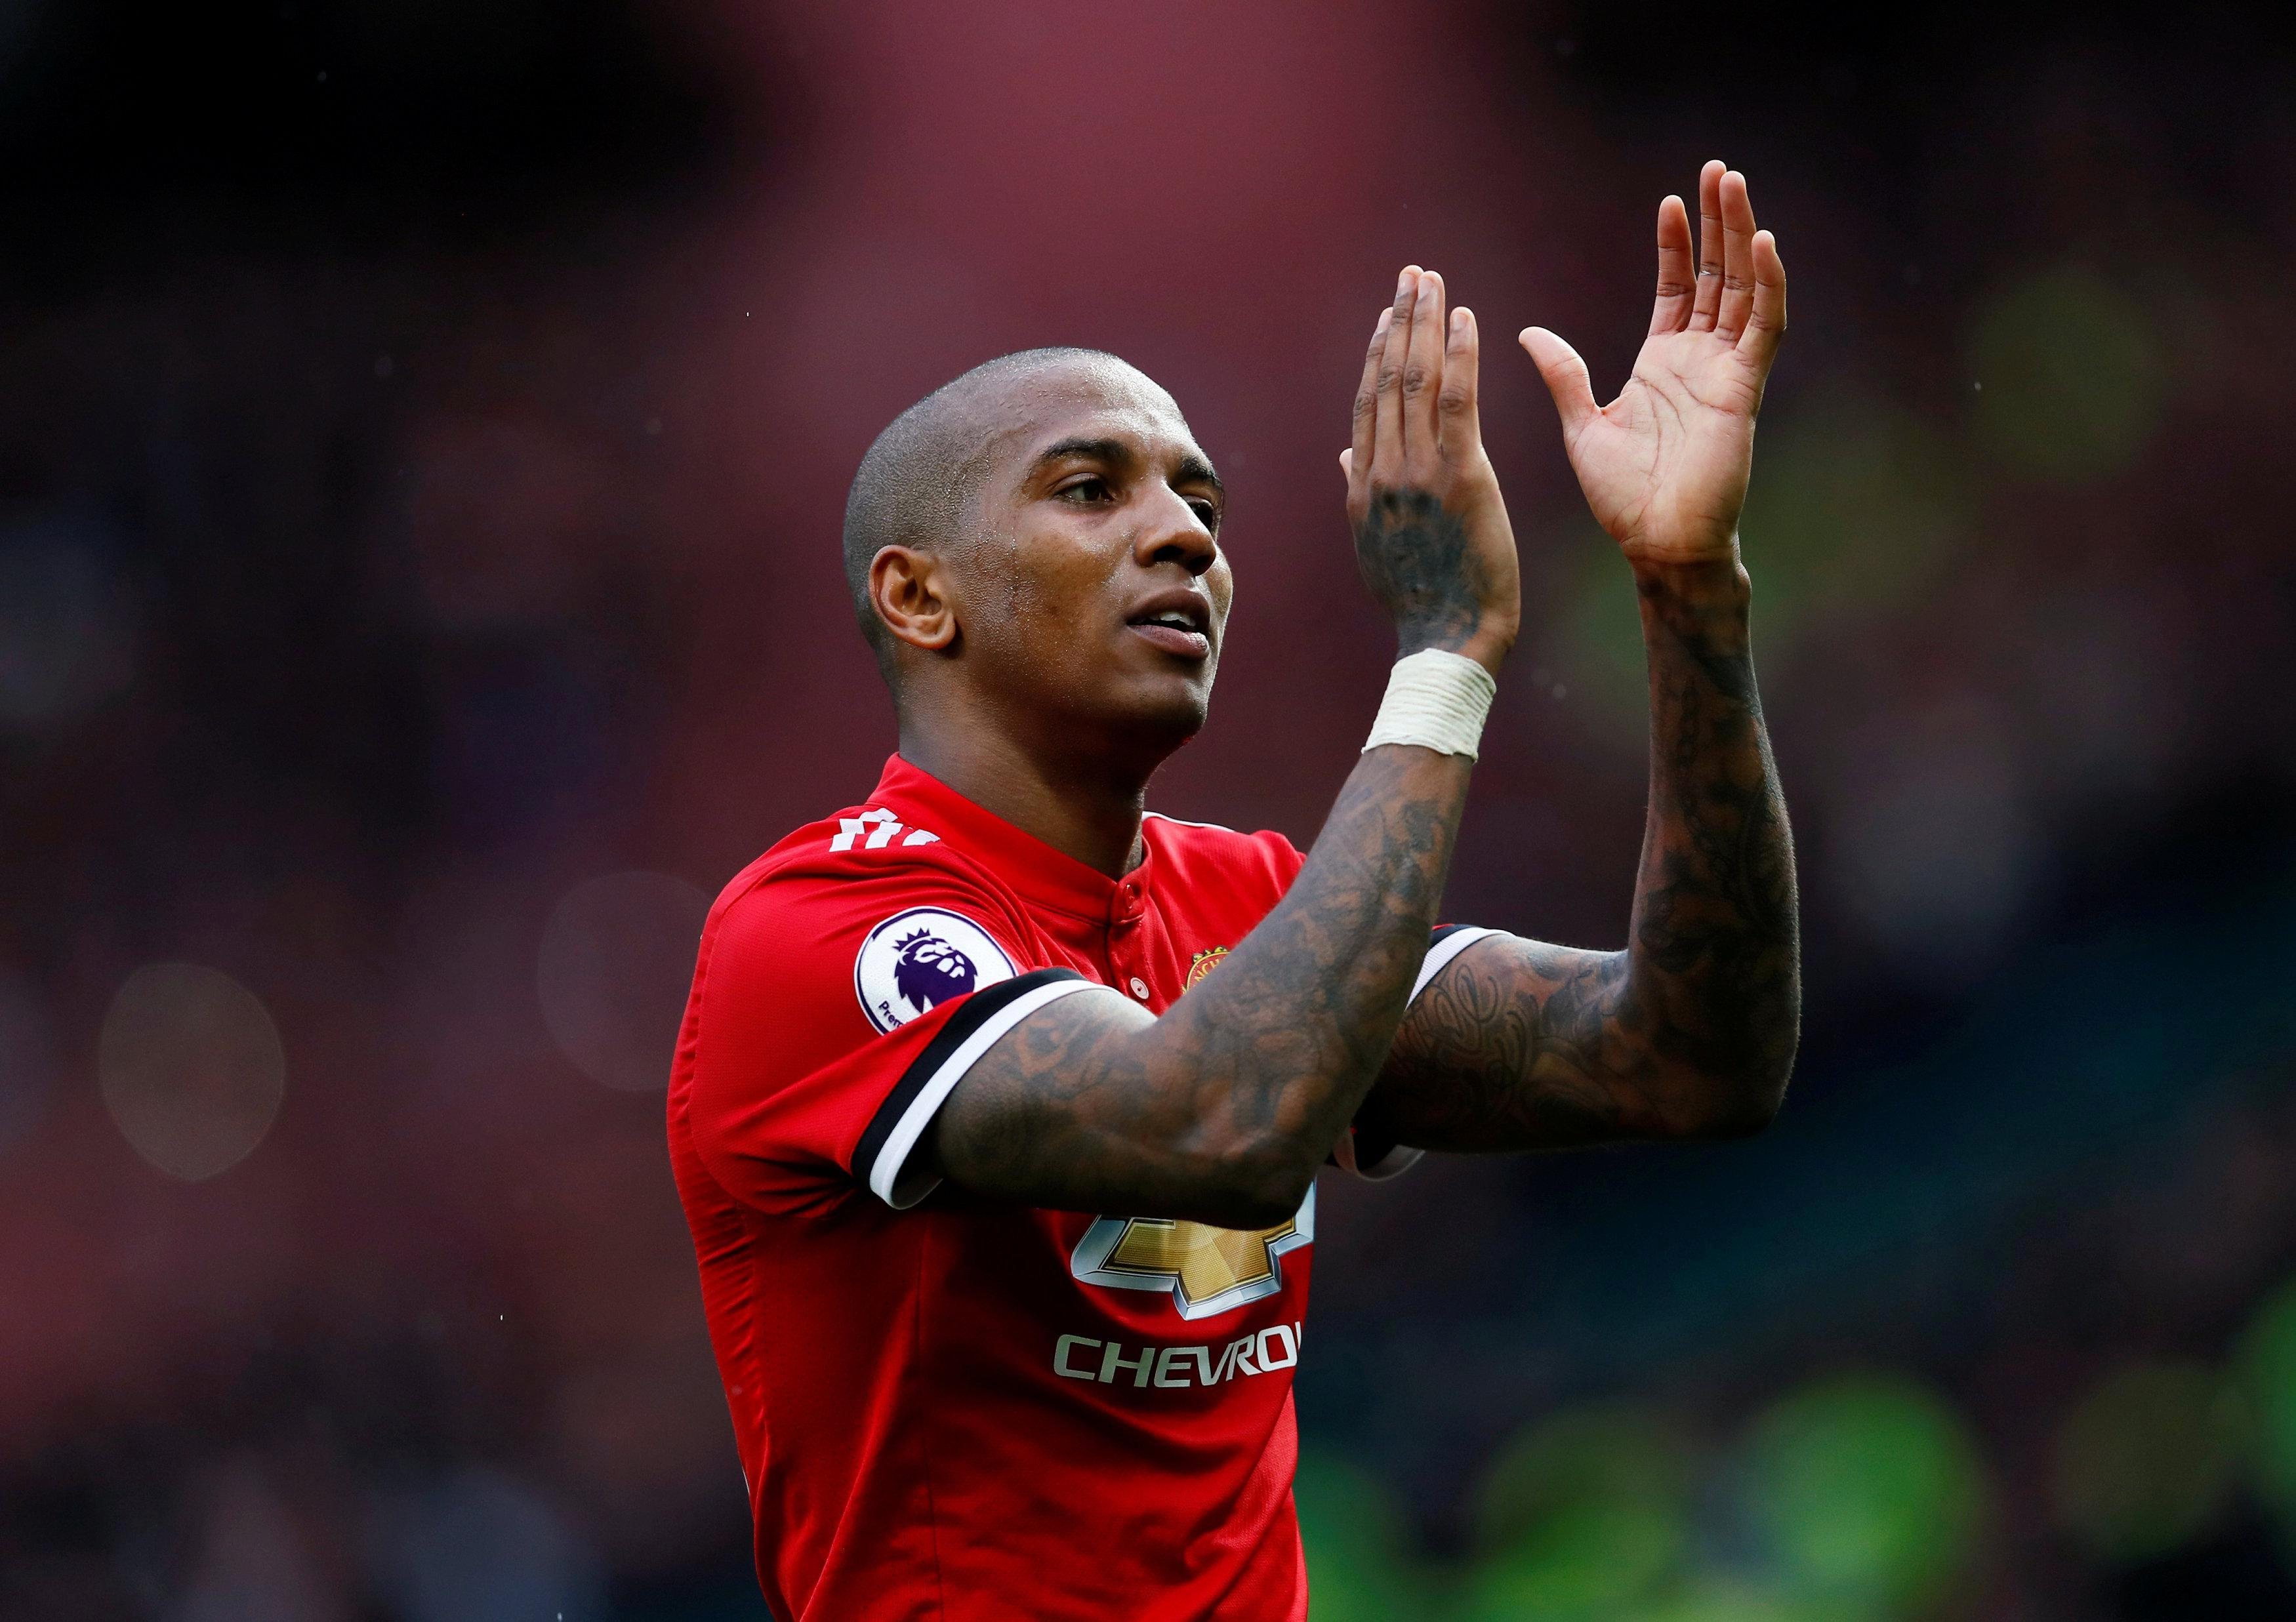 Manchester United trigger Ashley Young's one-year contract extension with defender set to stay another season at Old Trafford